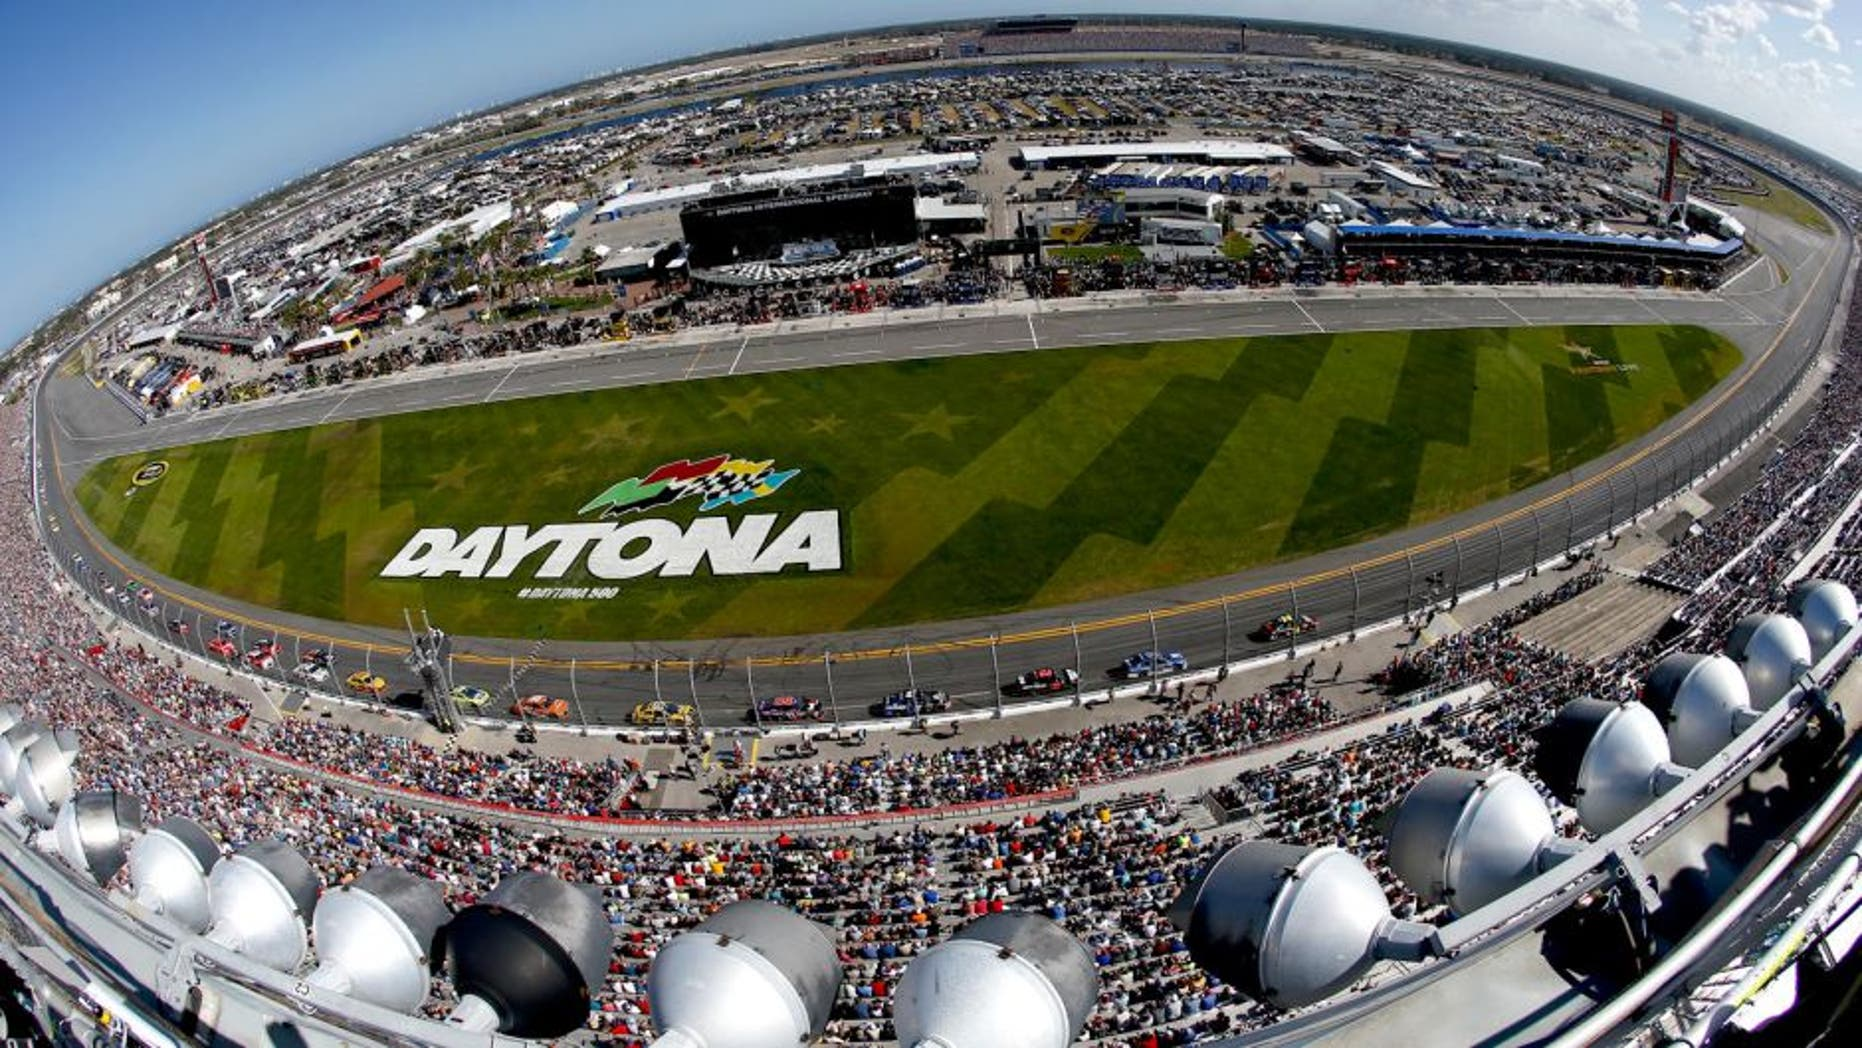 DAYTONA BEACH, FL - FEBRUARY 22: A general view of cars racing the NASCAR Sprint Cup Series 57th Annual Daytona 500 at Daytona International Speedway on February 22, 2015 in Daytona Beach, Florida. (Photo by Jeff Zelevansky/NASCAR via Getty Images)